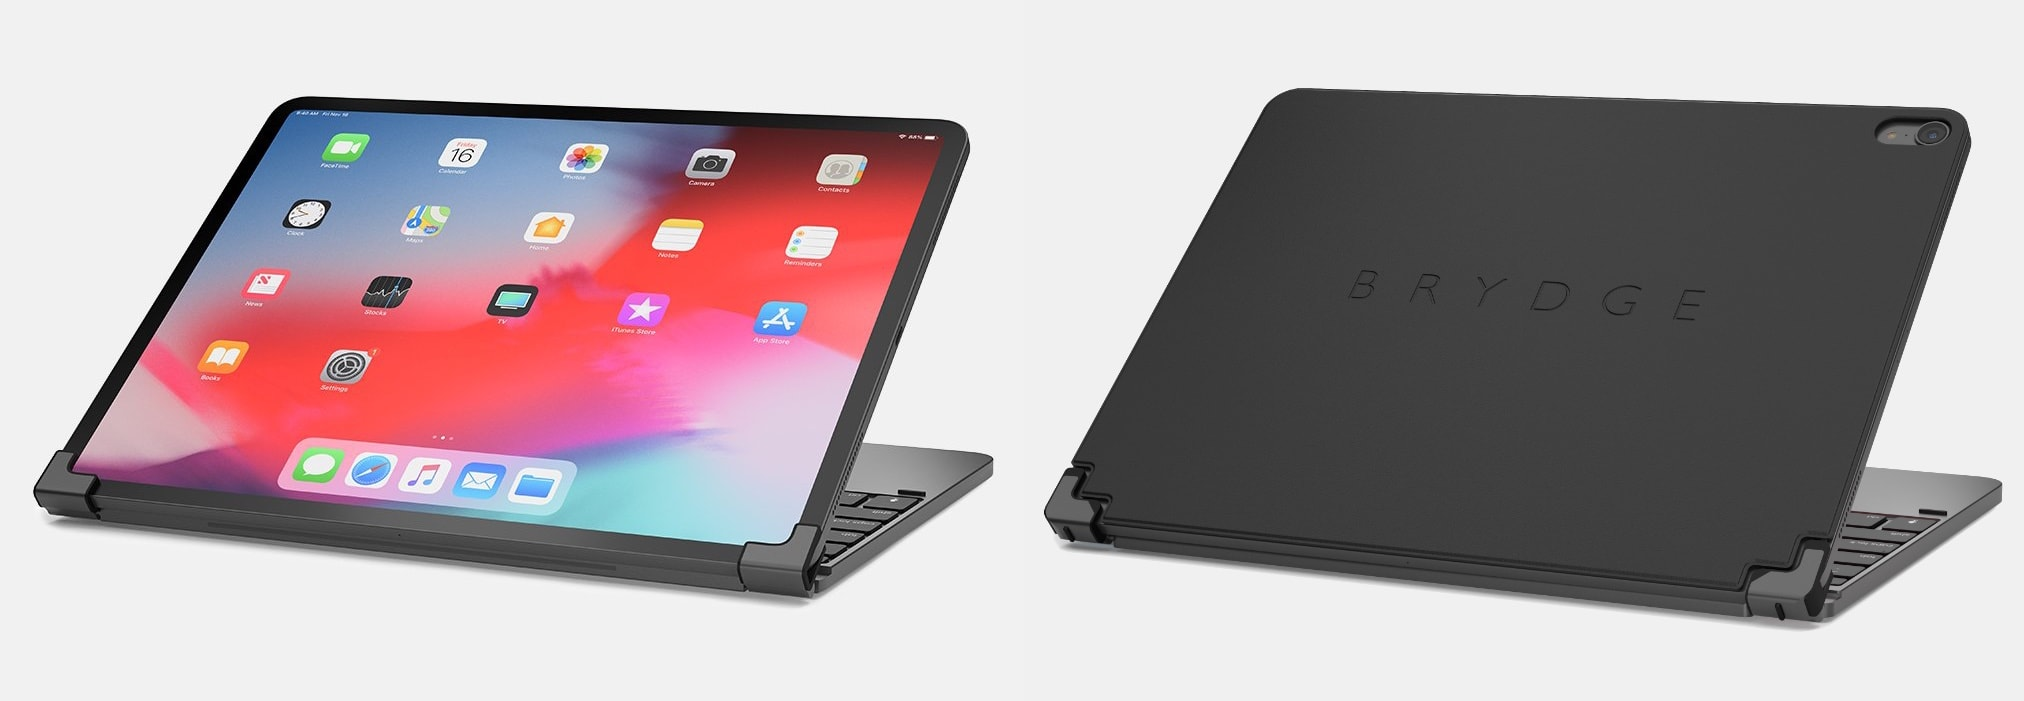 c77eda04d49 The Brydge 2018 iPad Pro keyboard has a cinema mode and protection for back  of the